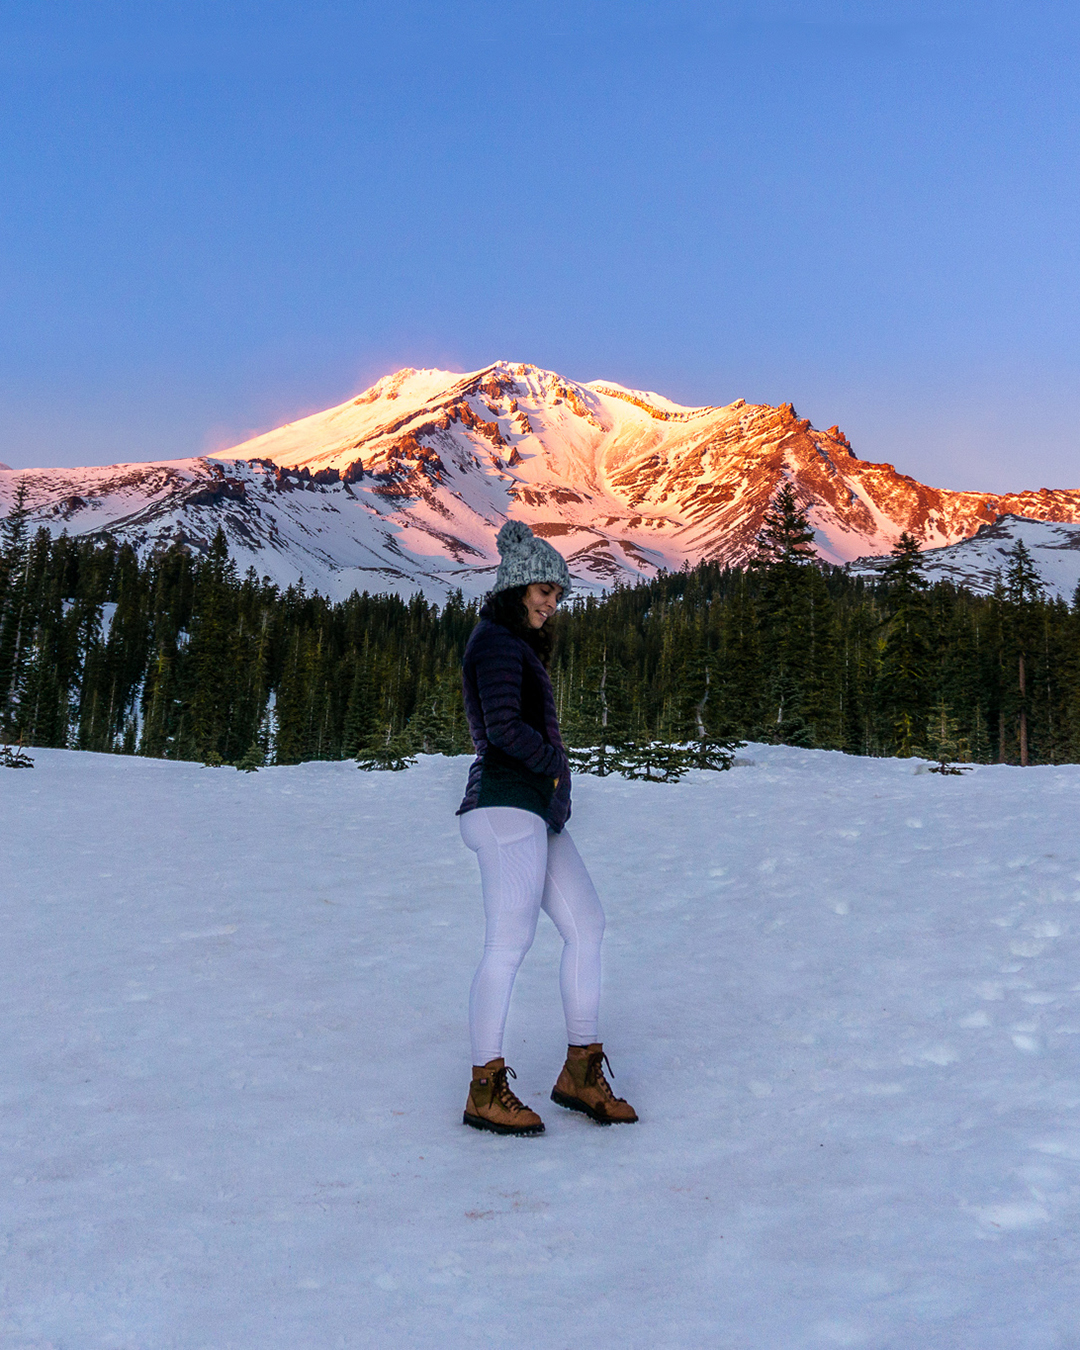 woman at mountain with view of mount shasta at sunset